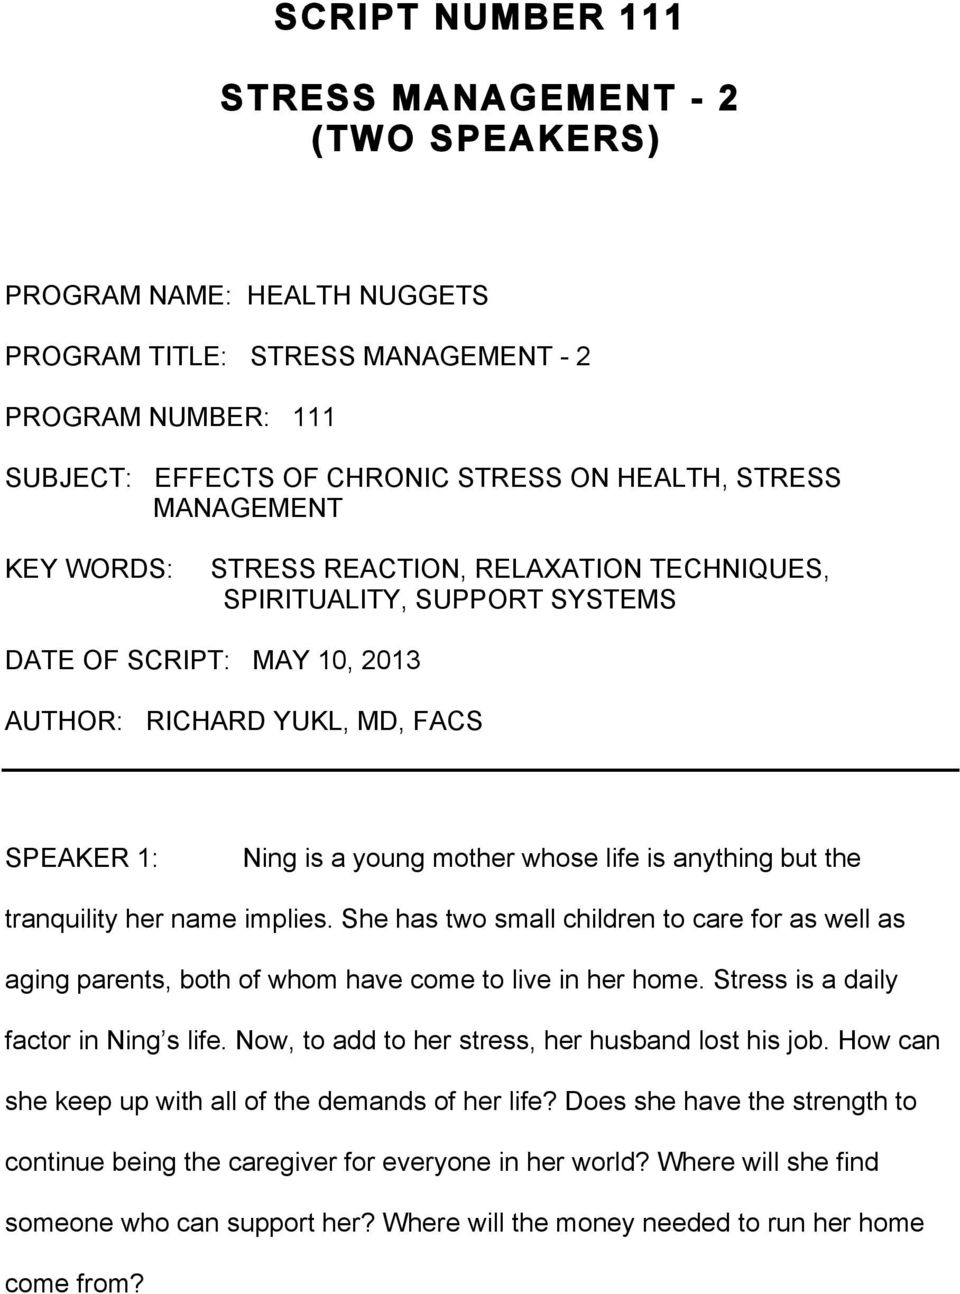 but the tranquility her name implies. She has two small children to care for as well as aging parents, both of whom have come to live in her home. Stress is a daily factor in Ning s life.